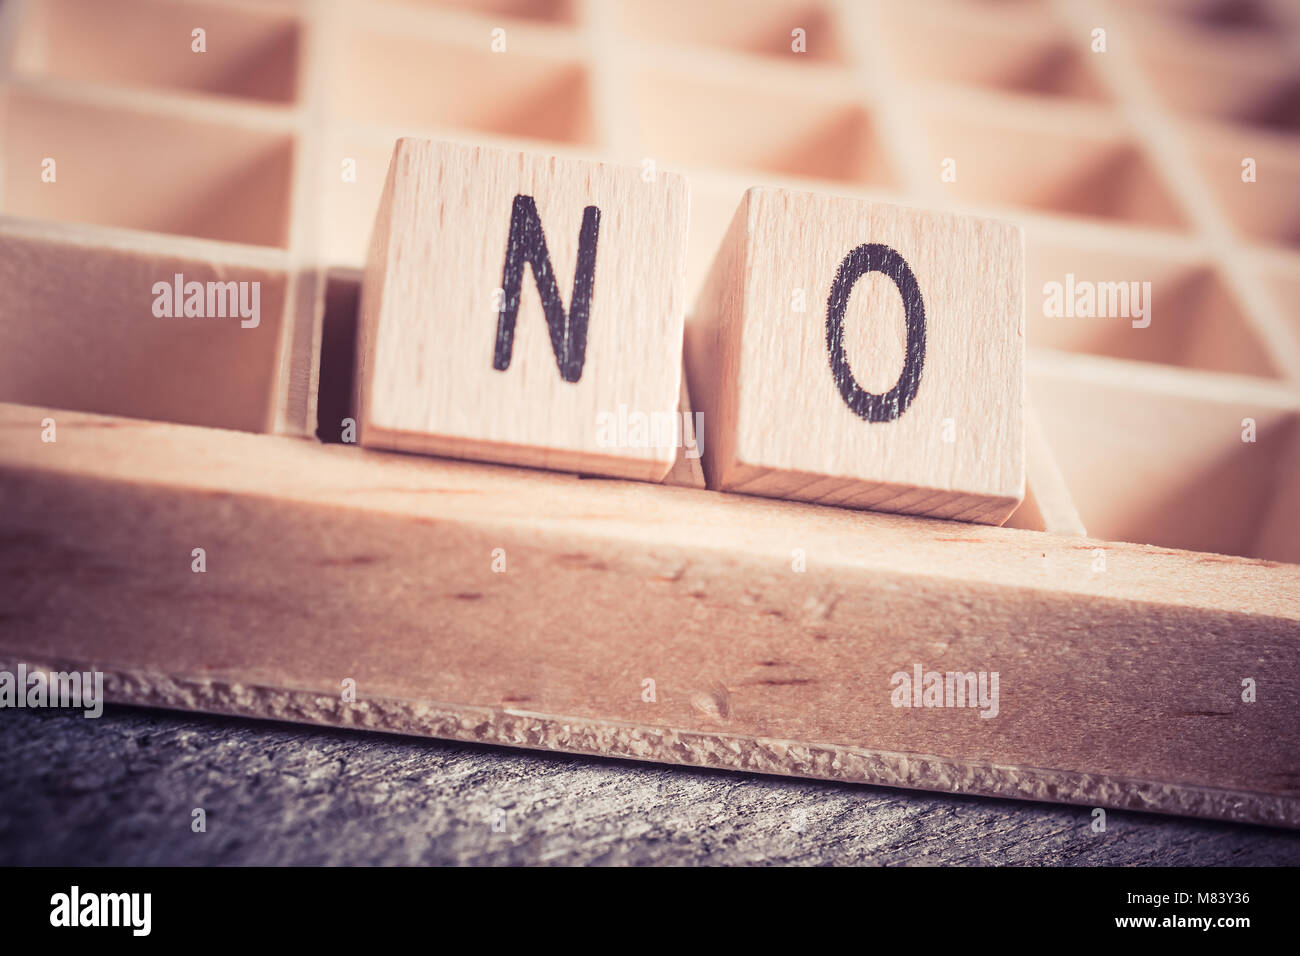 Macro Of The Word No Formed By Wooden Blocks In A Type Case - Stock Image